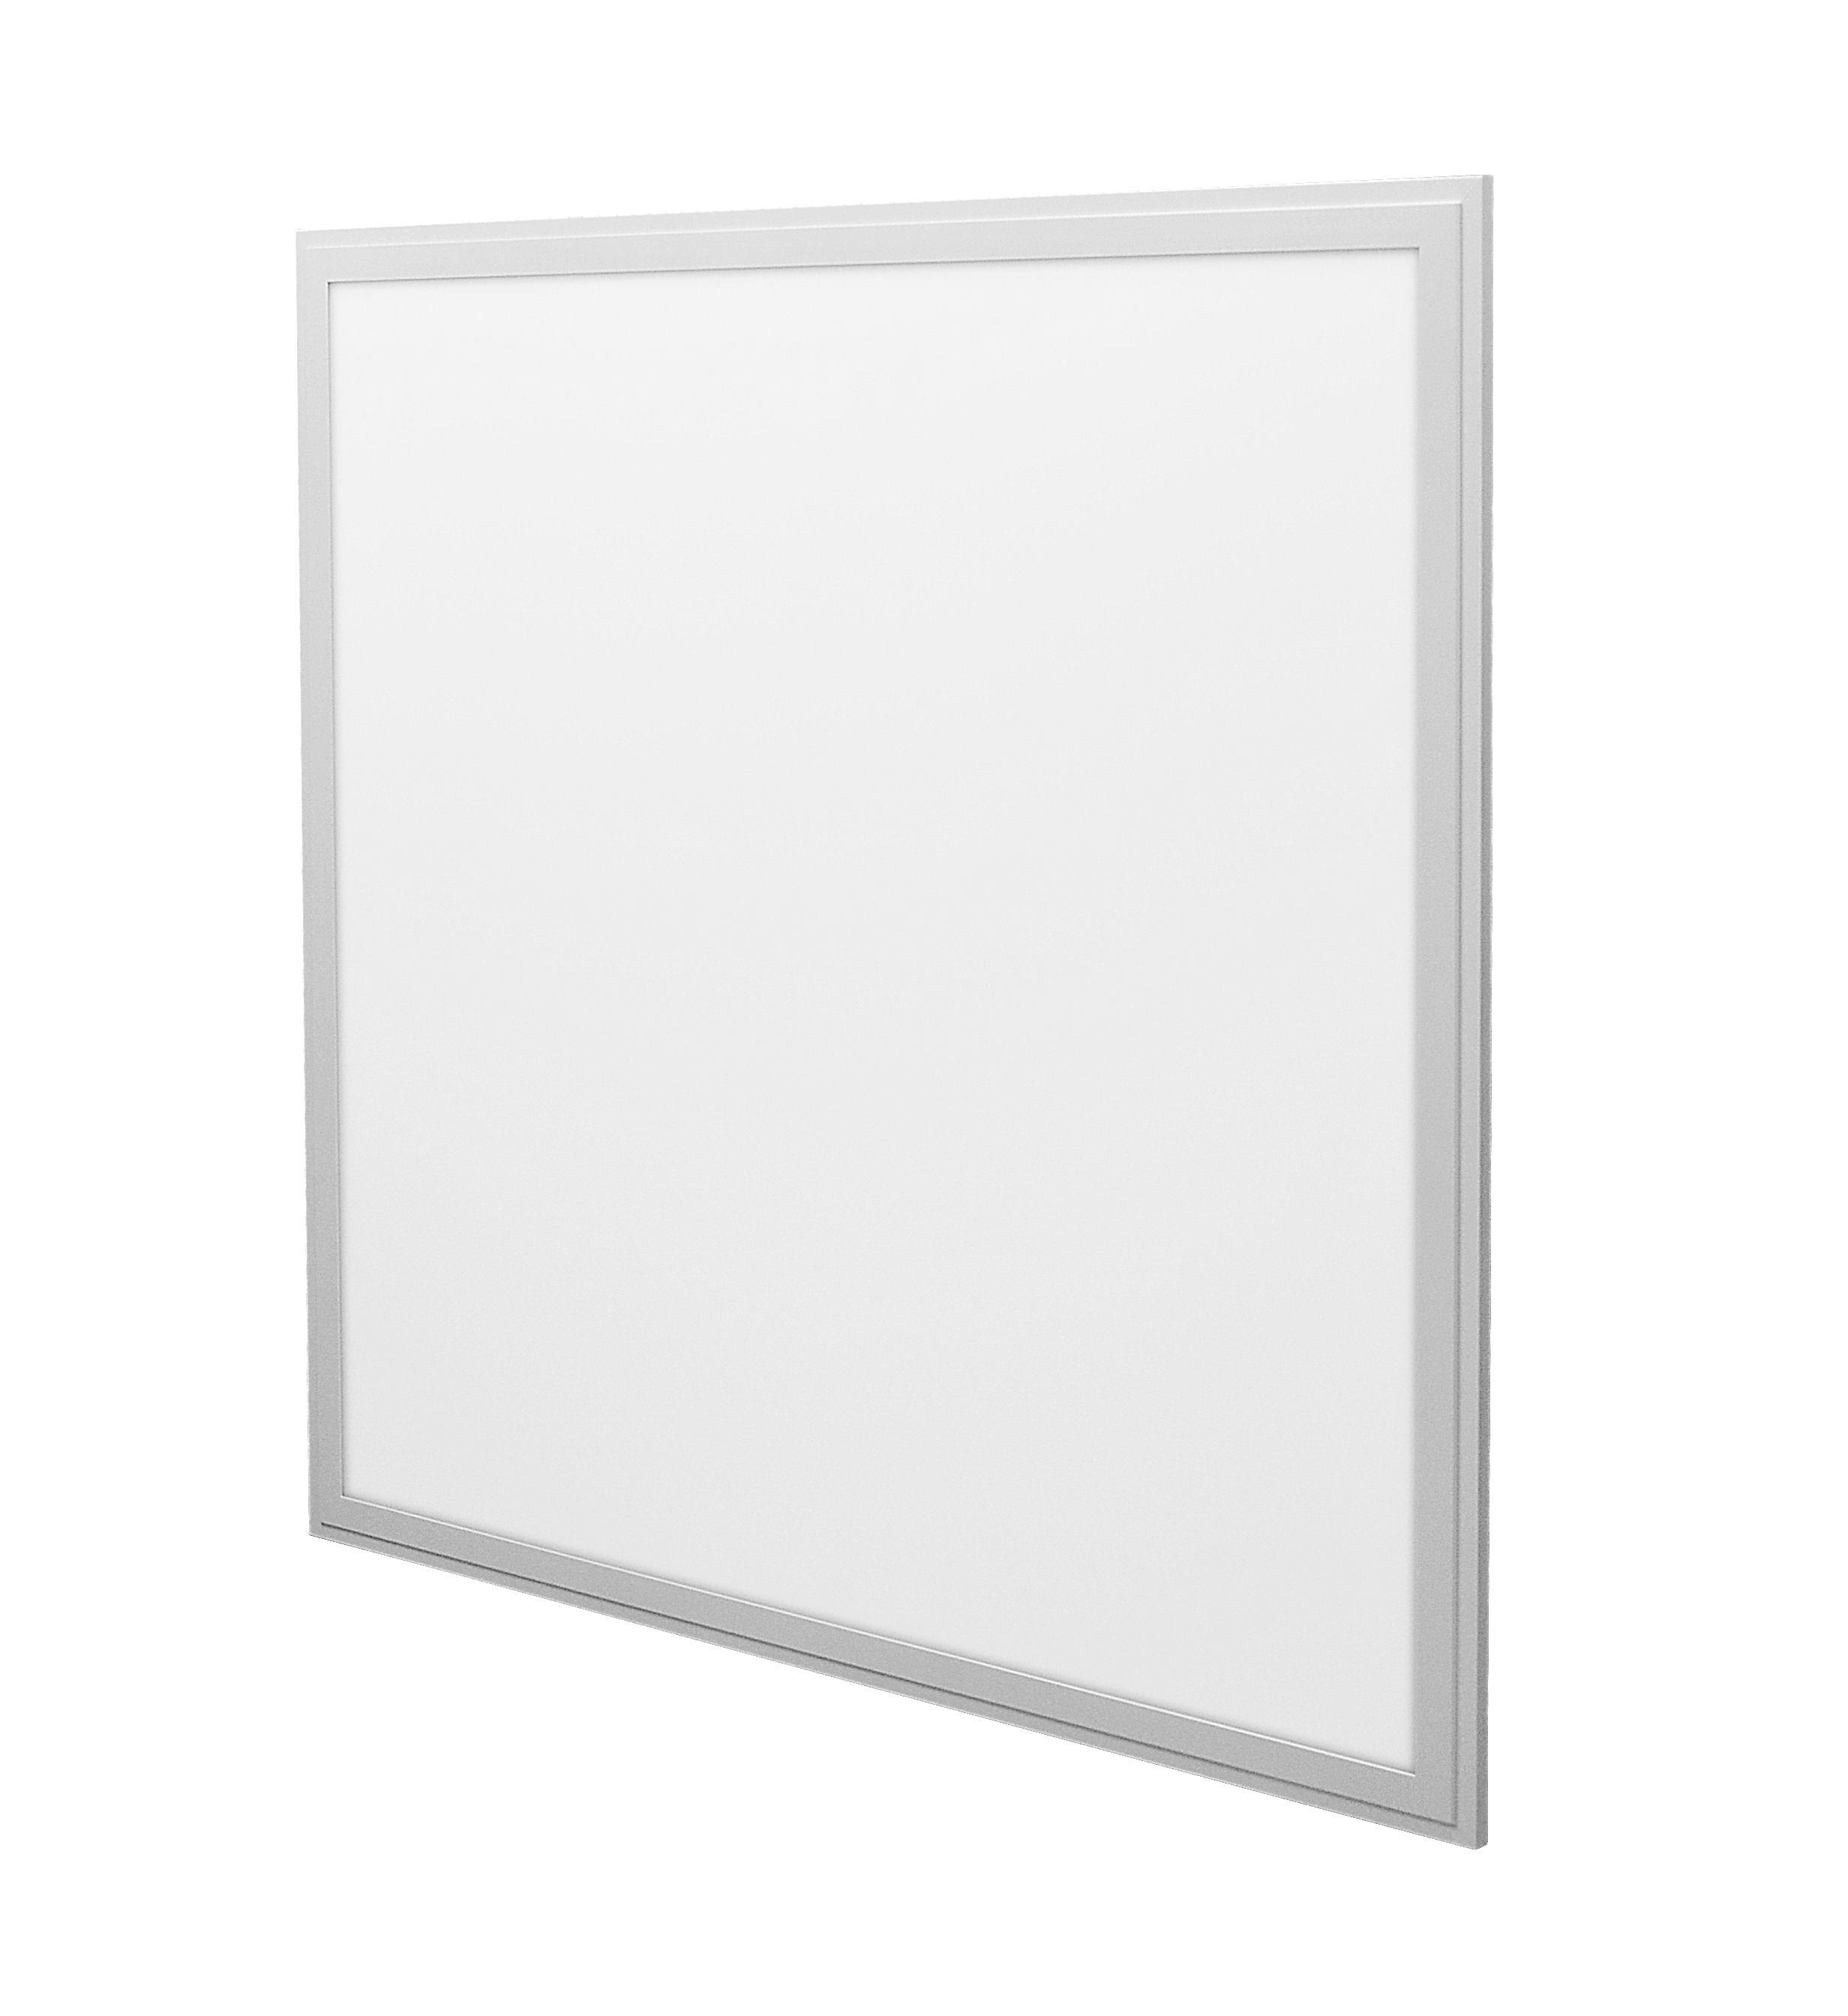 Top led ceiling panels reflector manufacturers for boardrooms-1